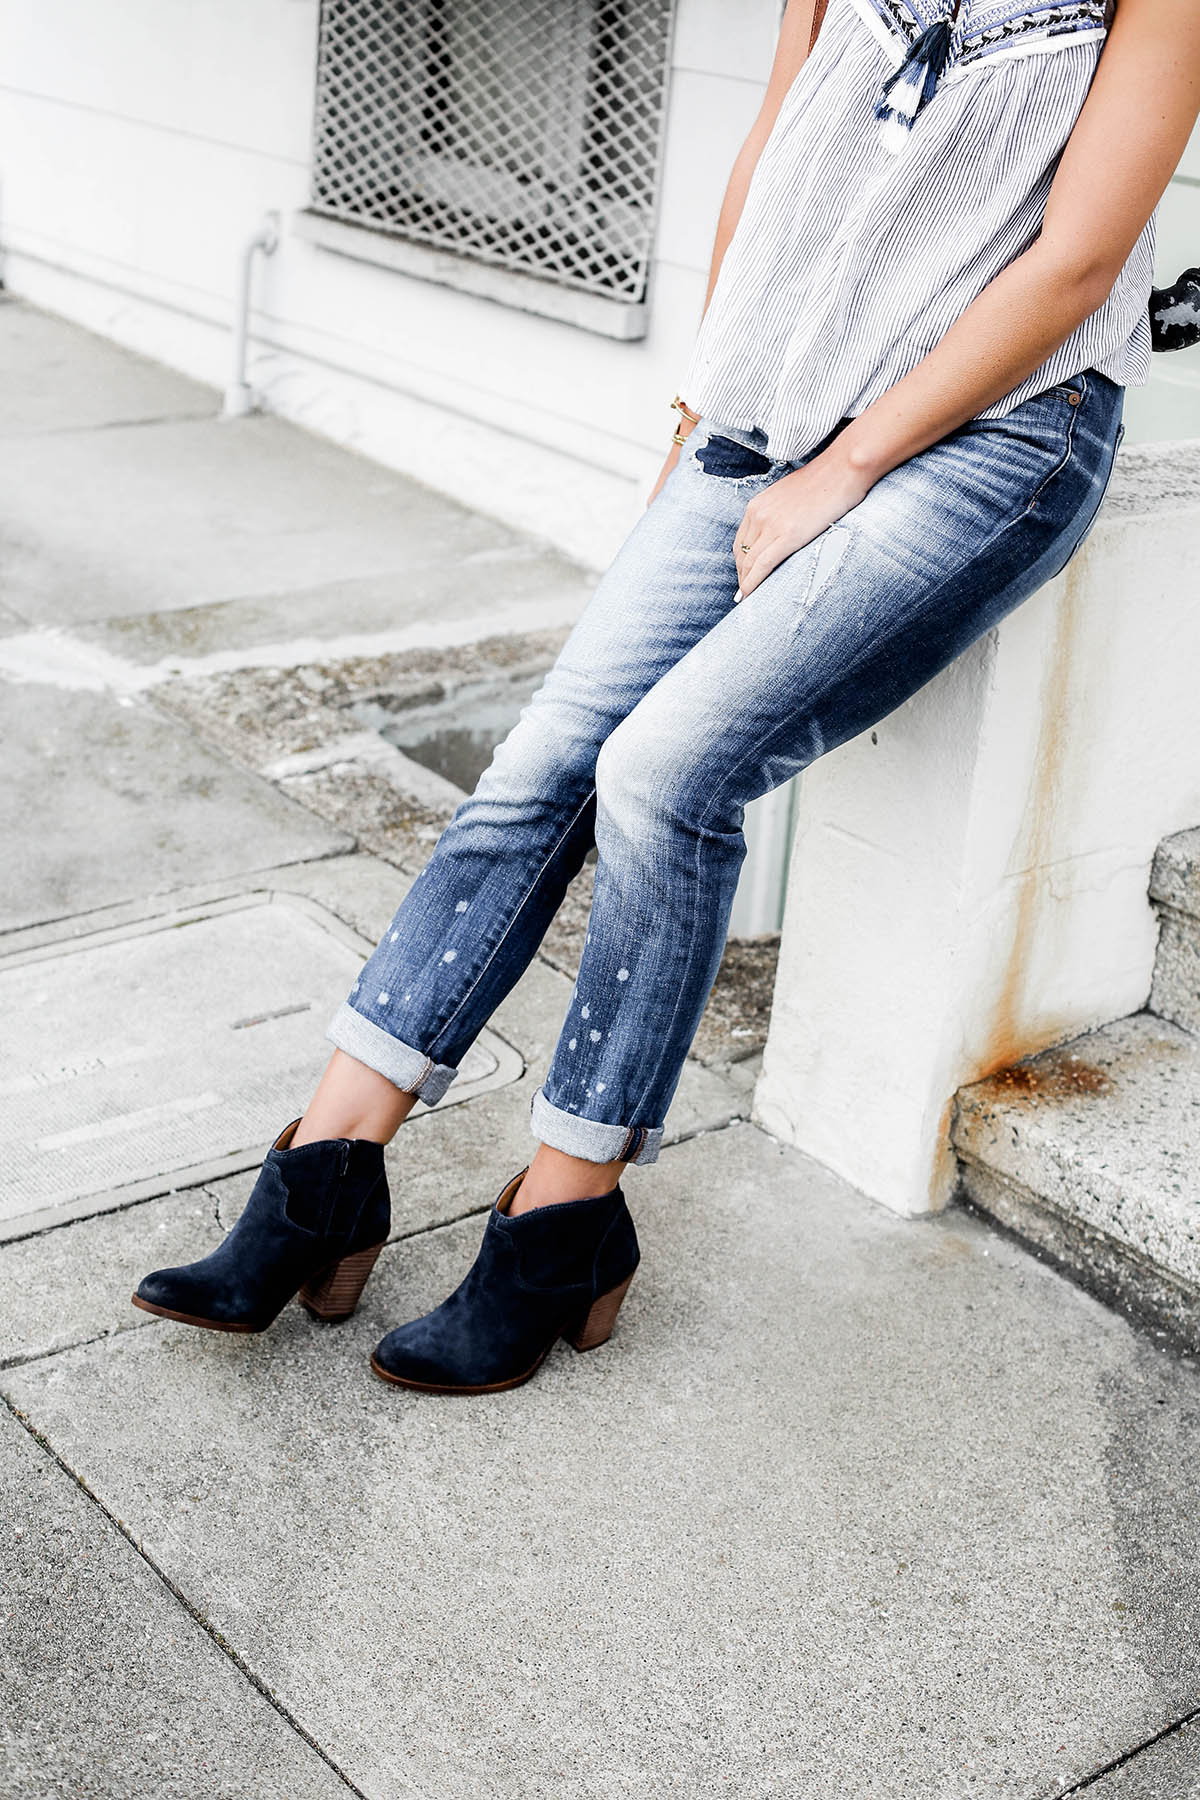 fall fashion trends patchwork denim boyfriend jeans and lucky brand blue suede ankle boots